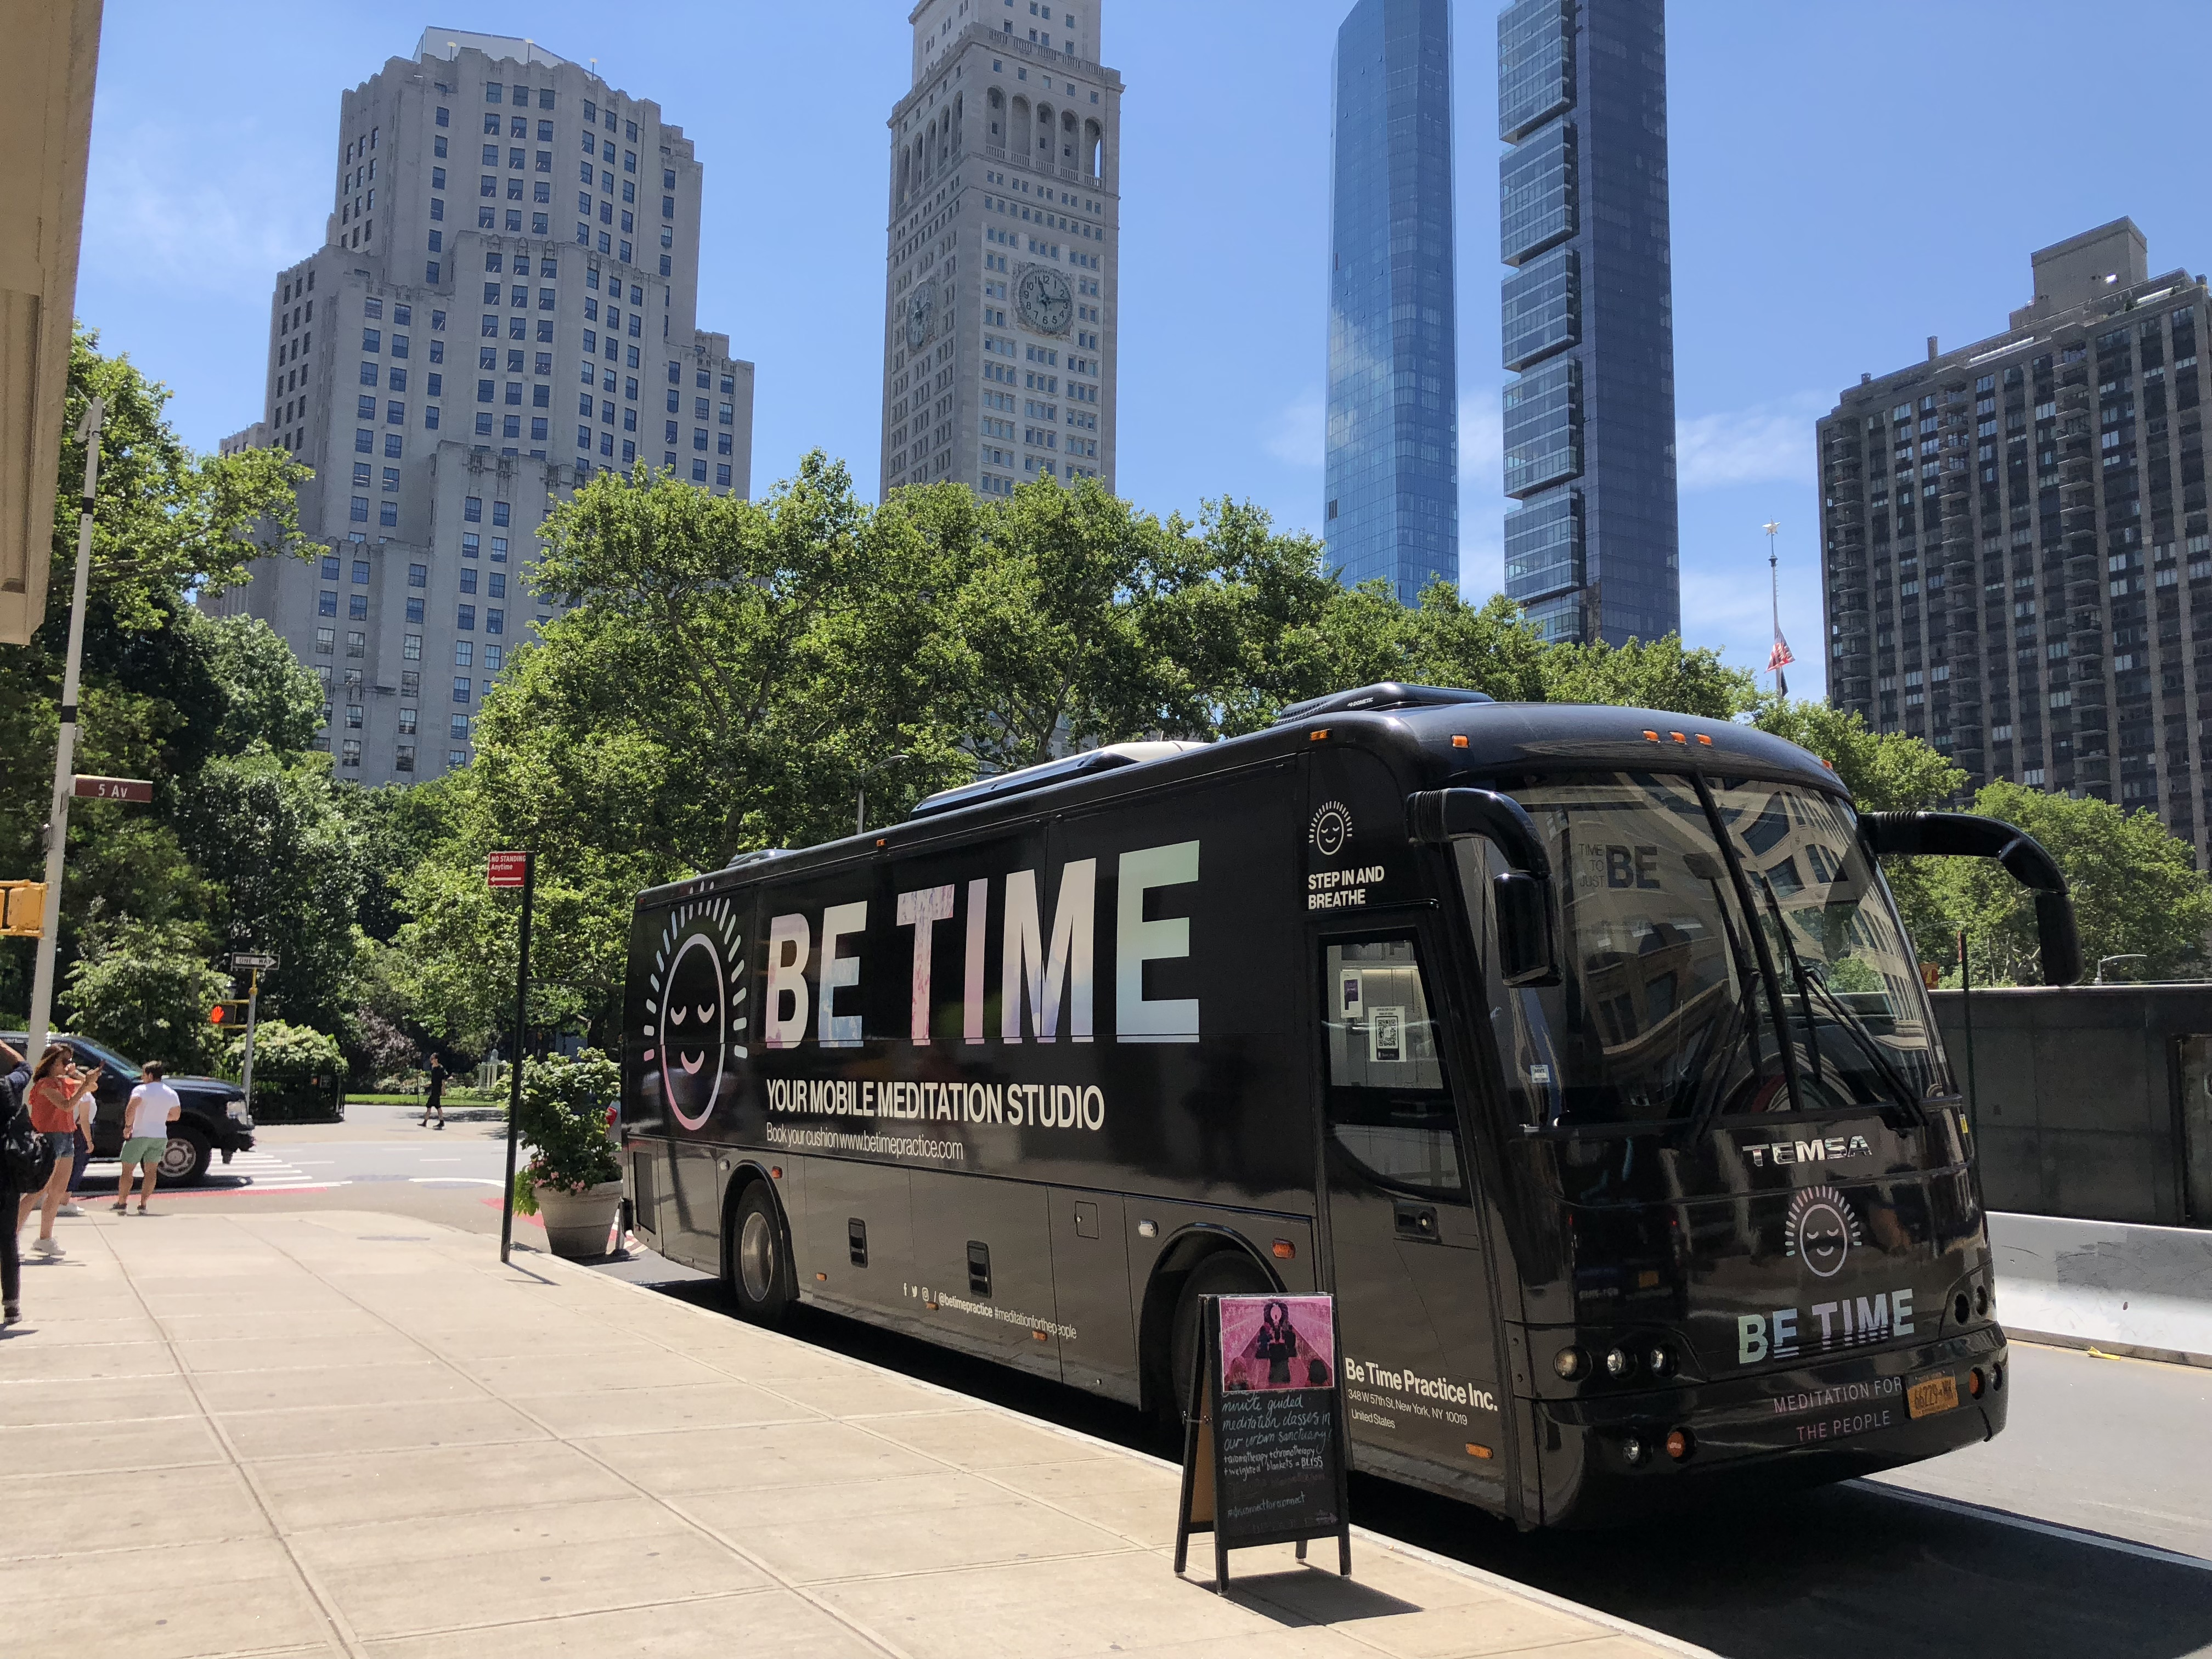 Need a Moment? The BE TIME Meditation Bus Makes Weekly Stops in NoMad